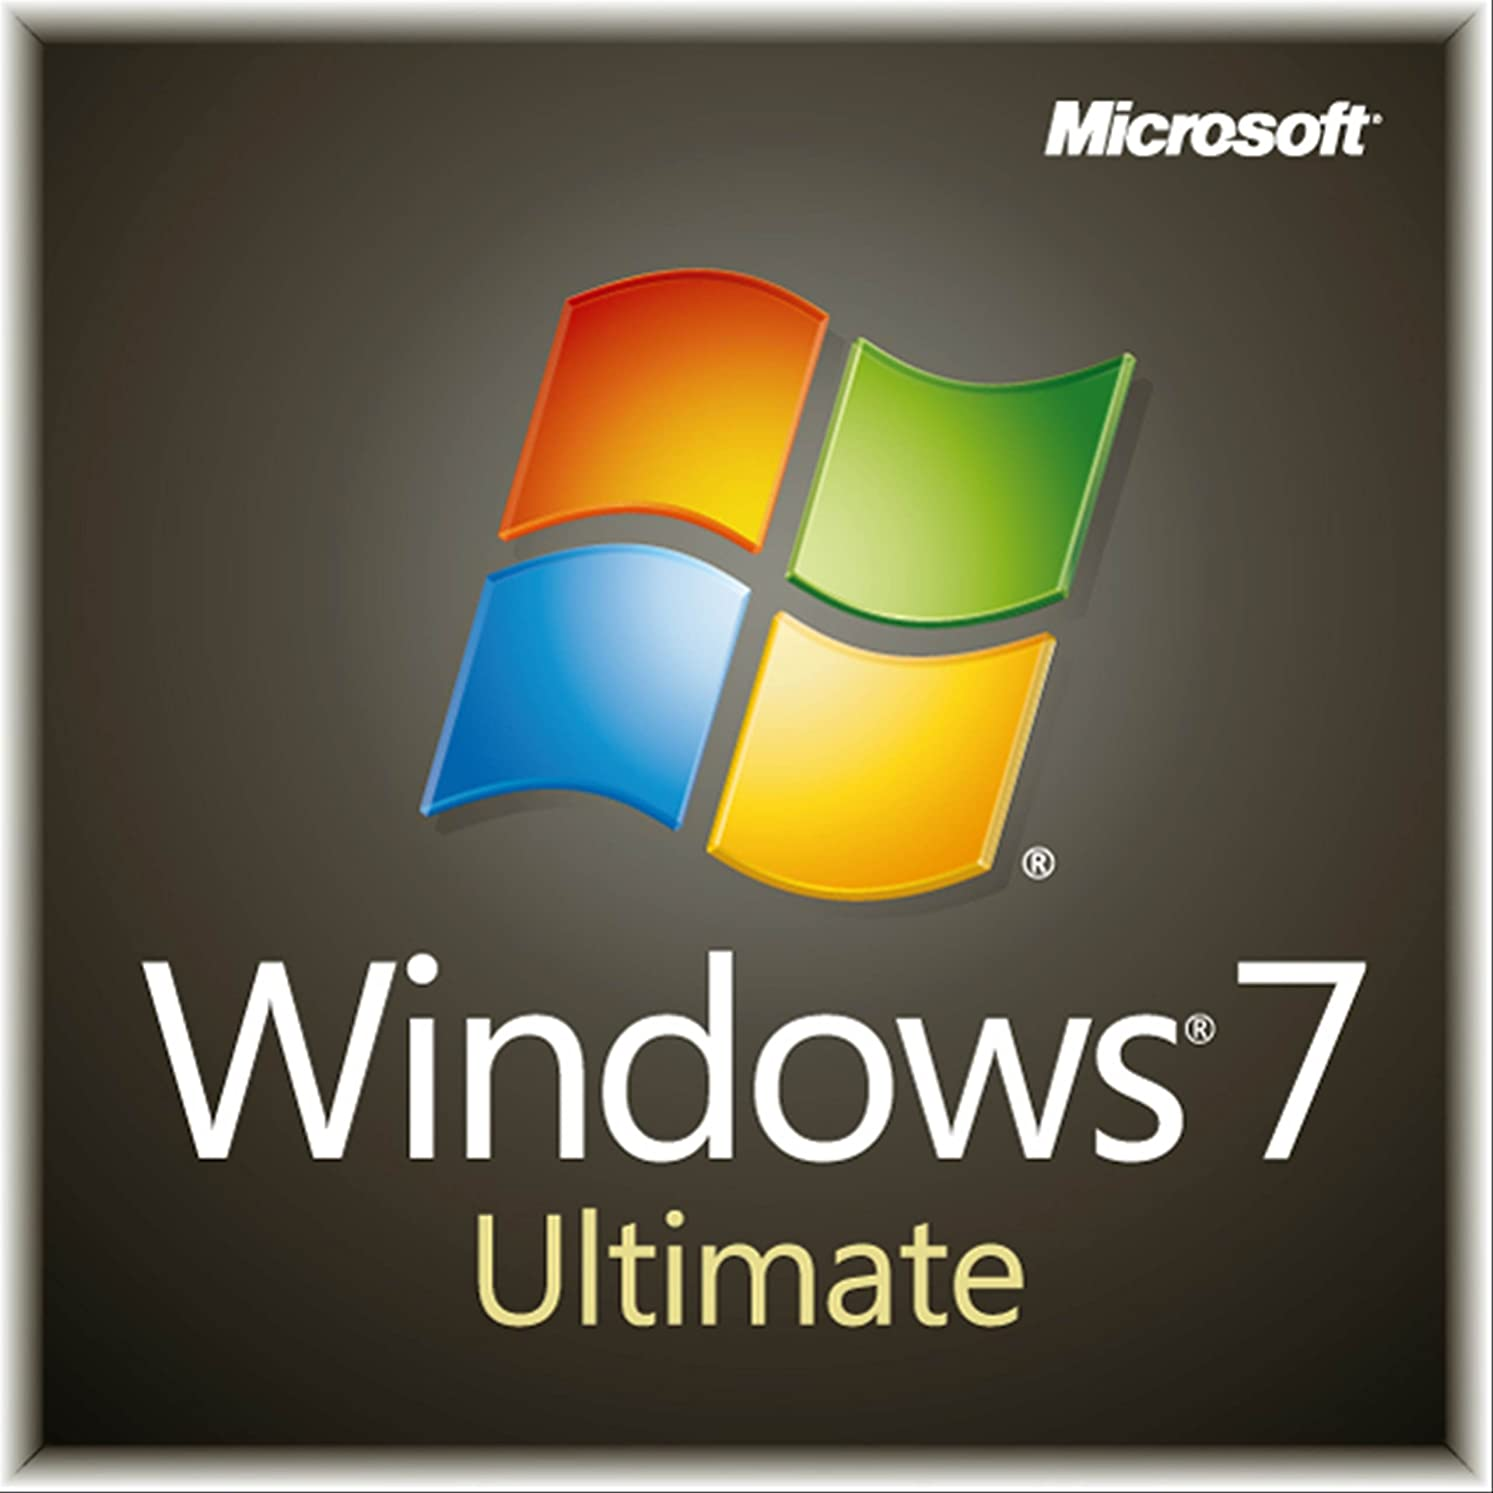 コンソール逆つば【旧商品】Microsoft Windows7 Ultimate 64bit  Service Pack 1 日本語 DSP版 DVD 【LANボードセット品】